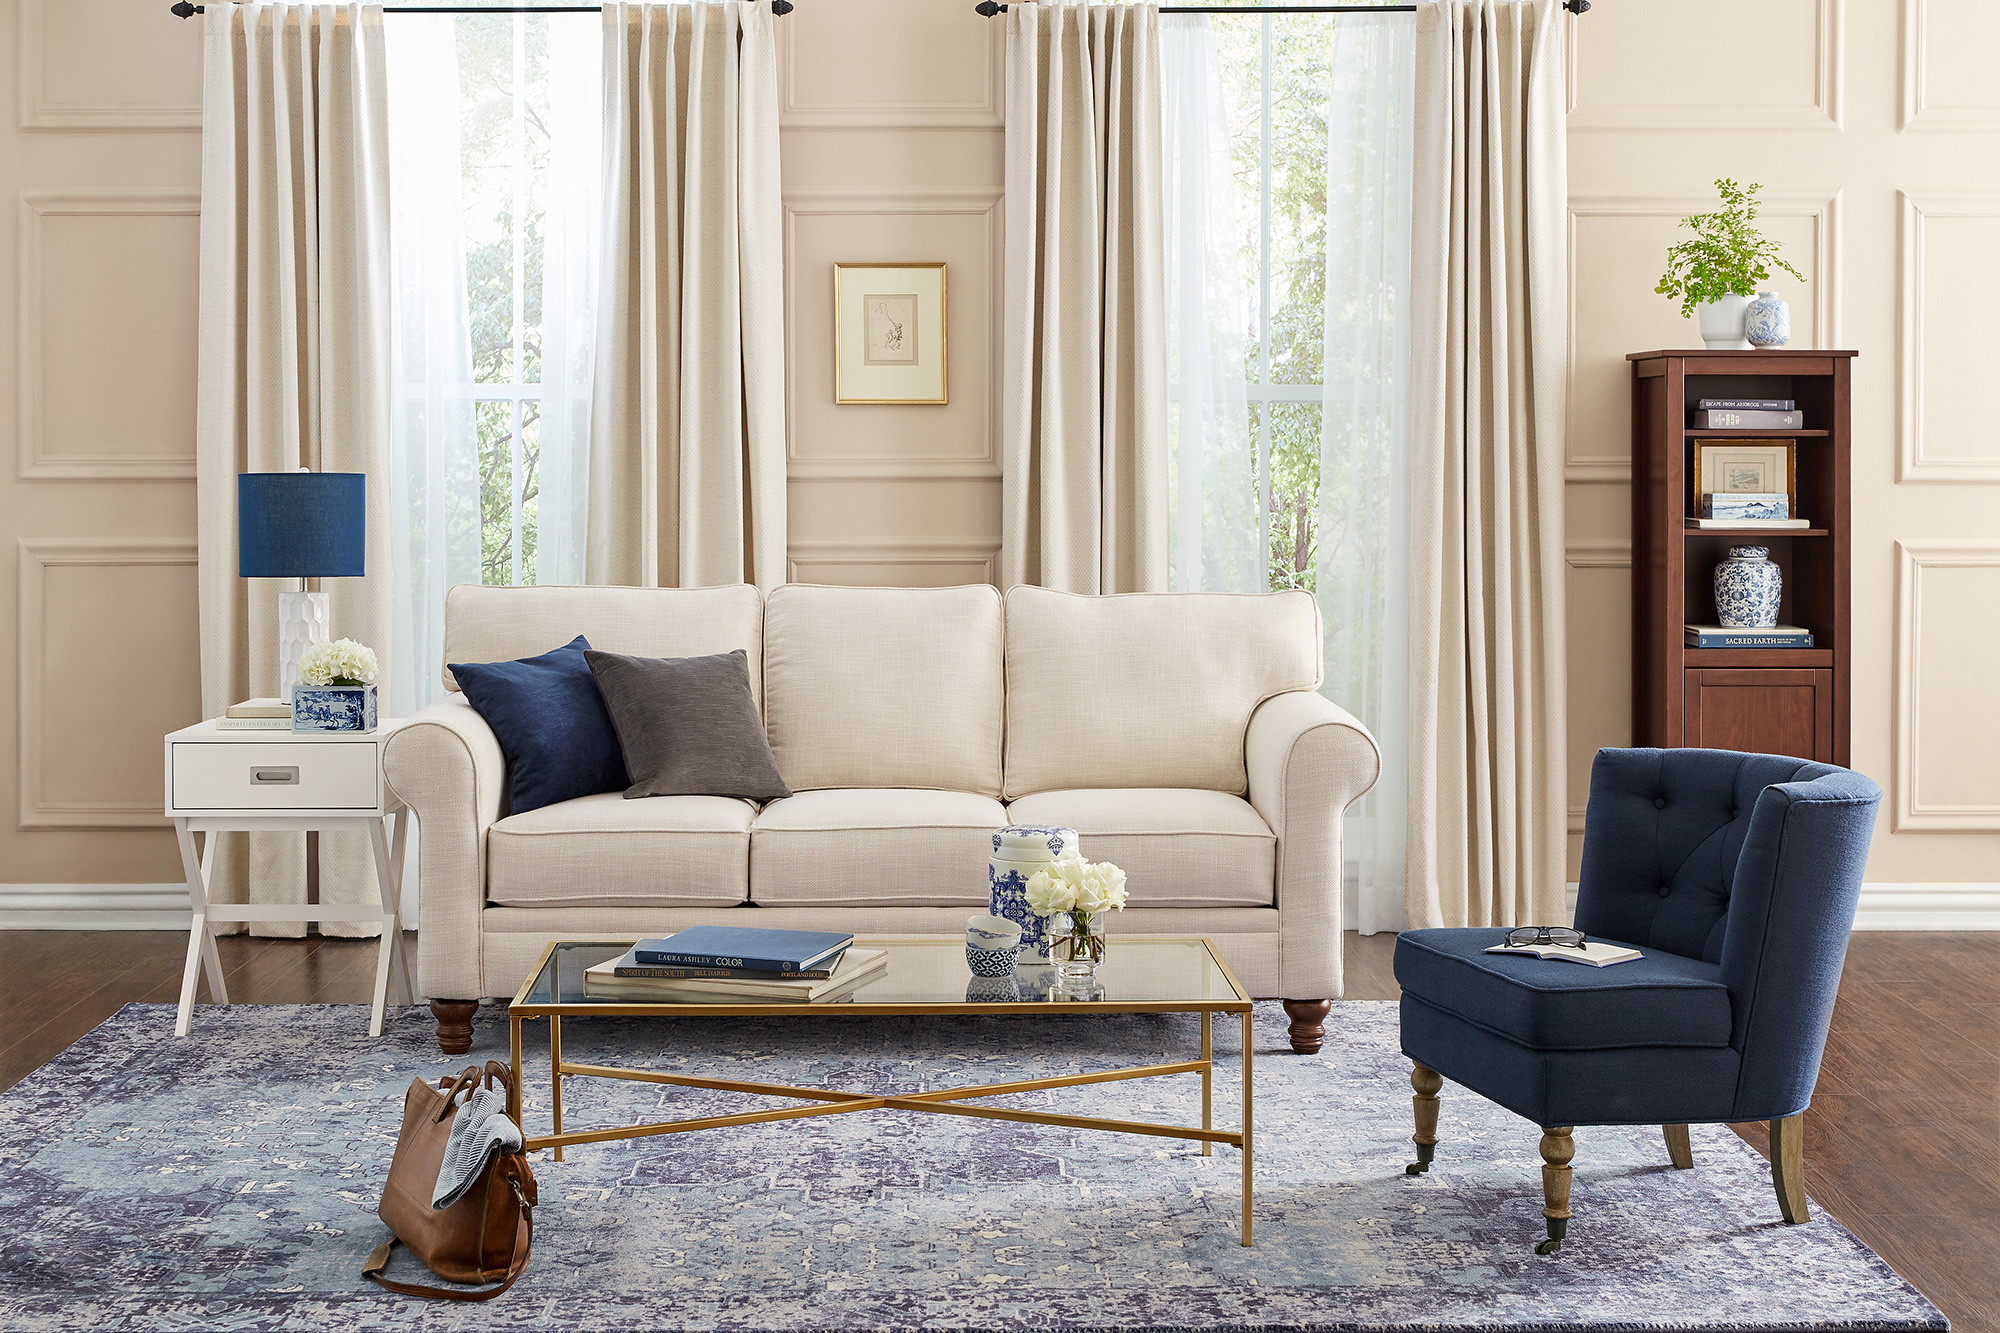 hottest uttermost laton mirrored accent table ravenna home living launches its own furnishings collection take peek the affordable items handmade runner coffee tables tablecloth